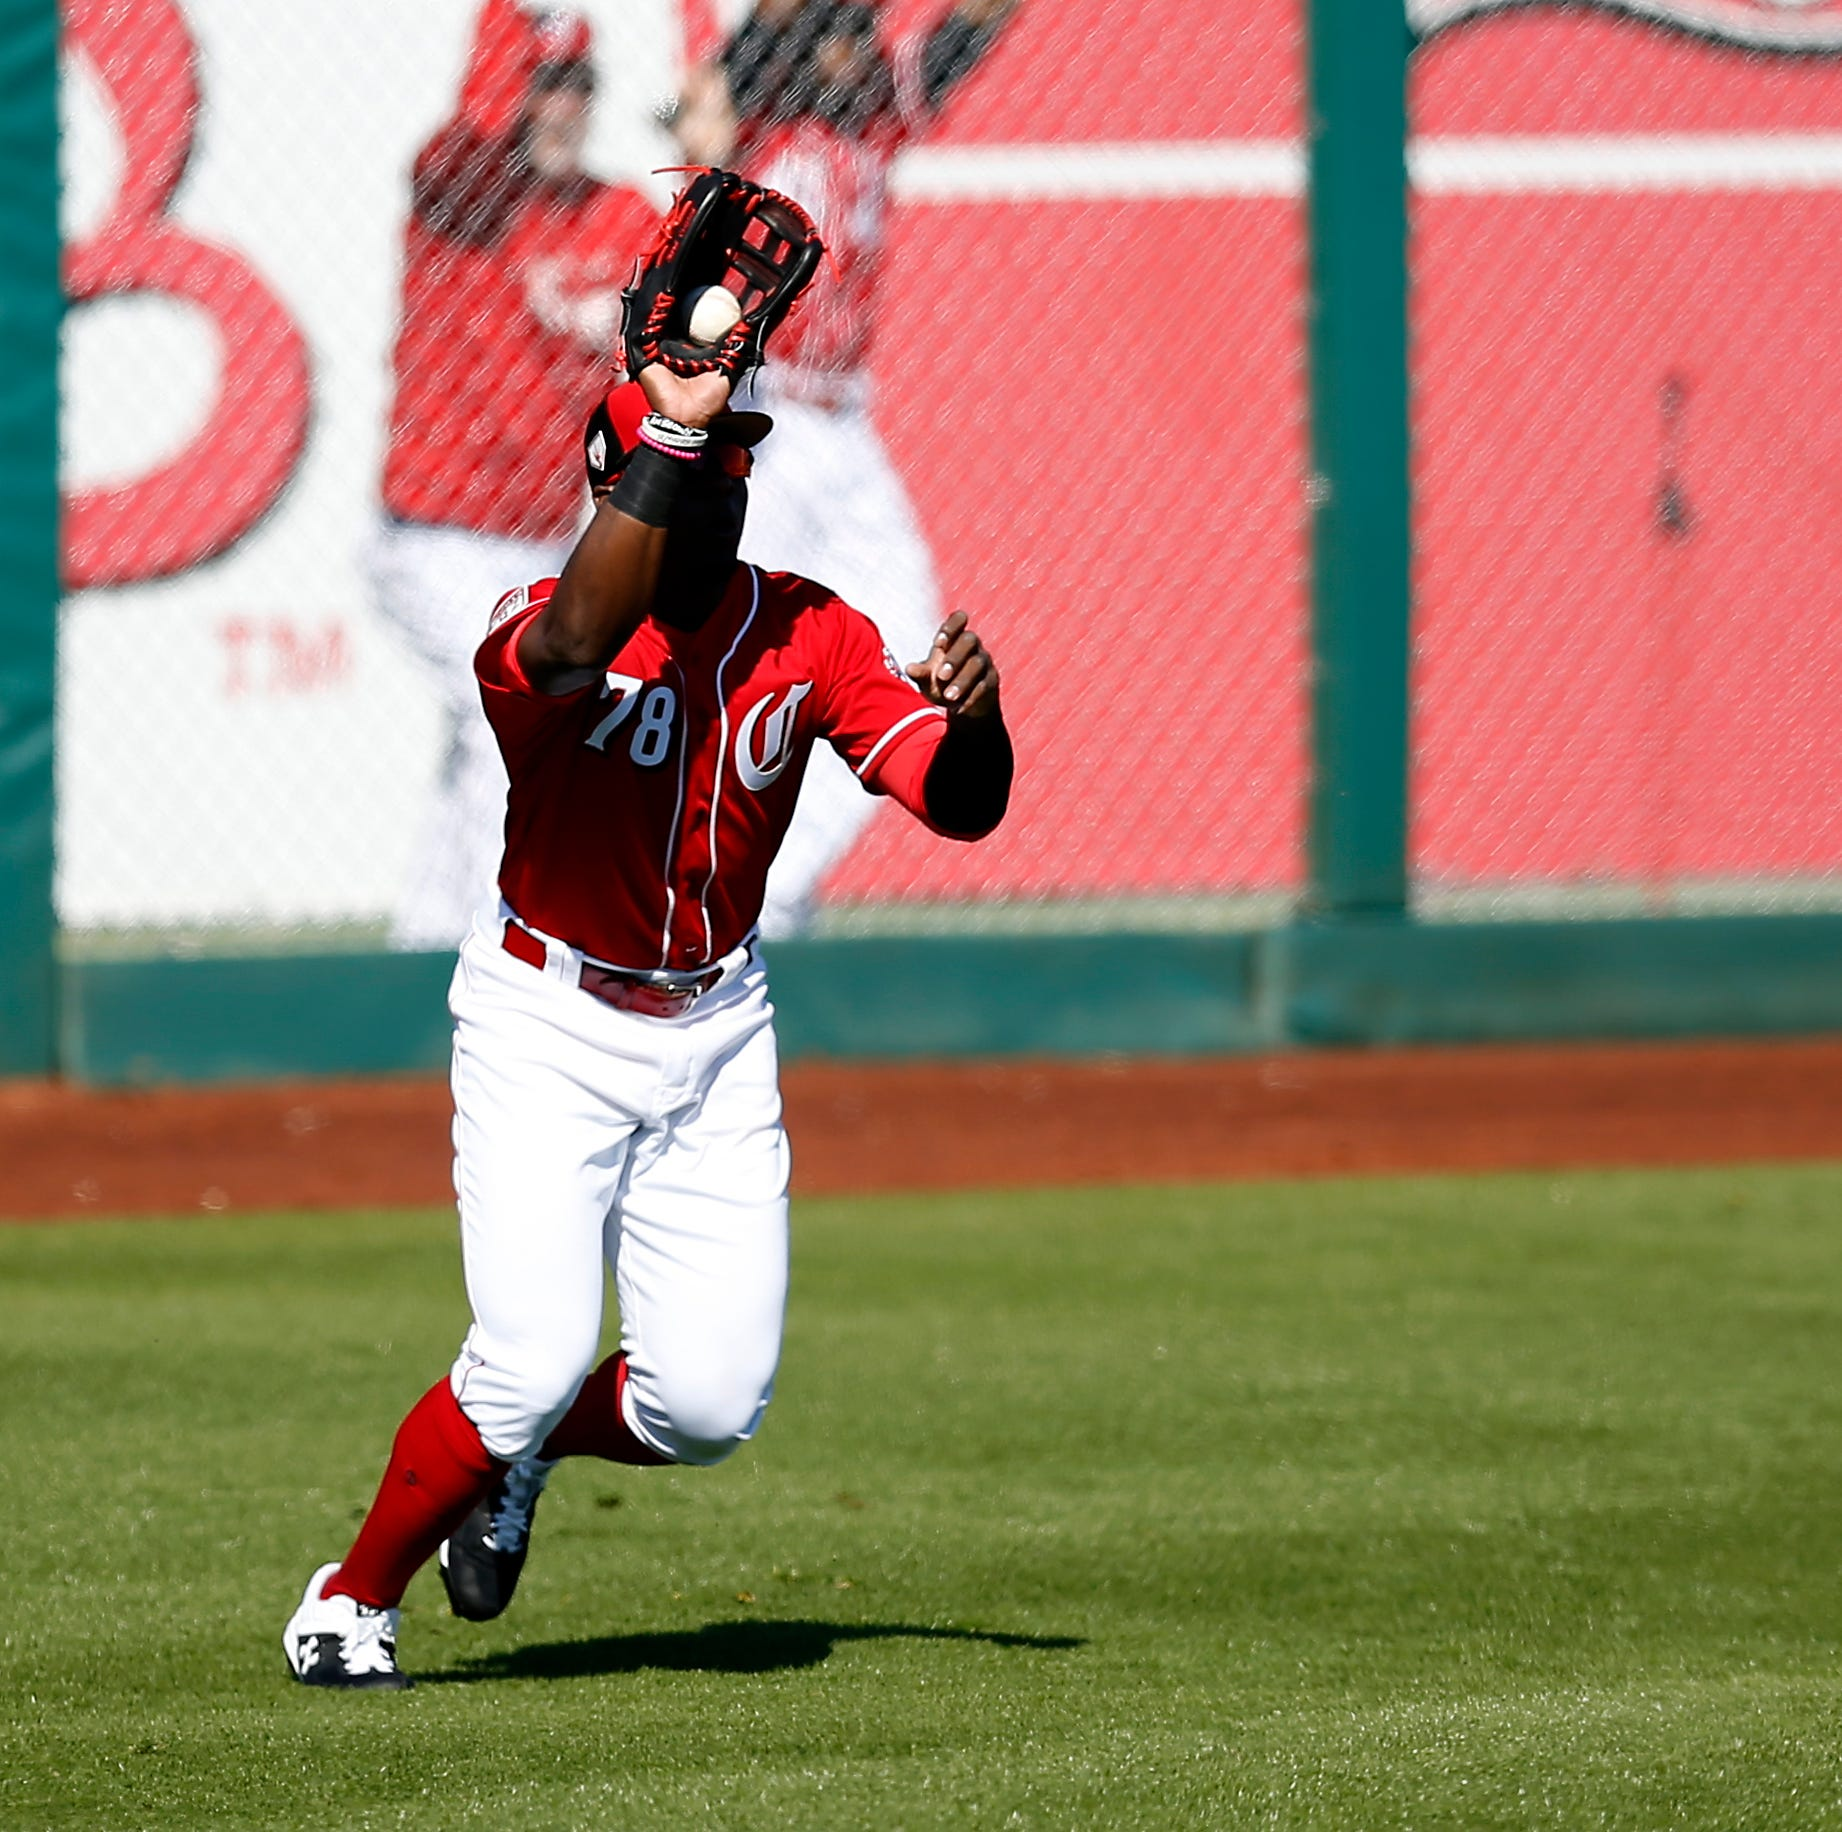 Cincinnati Reds prospect Taylor Trammell survives trade rumors, is focused on improving